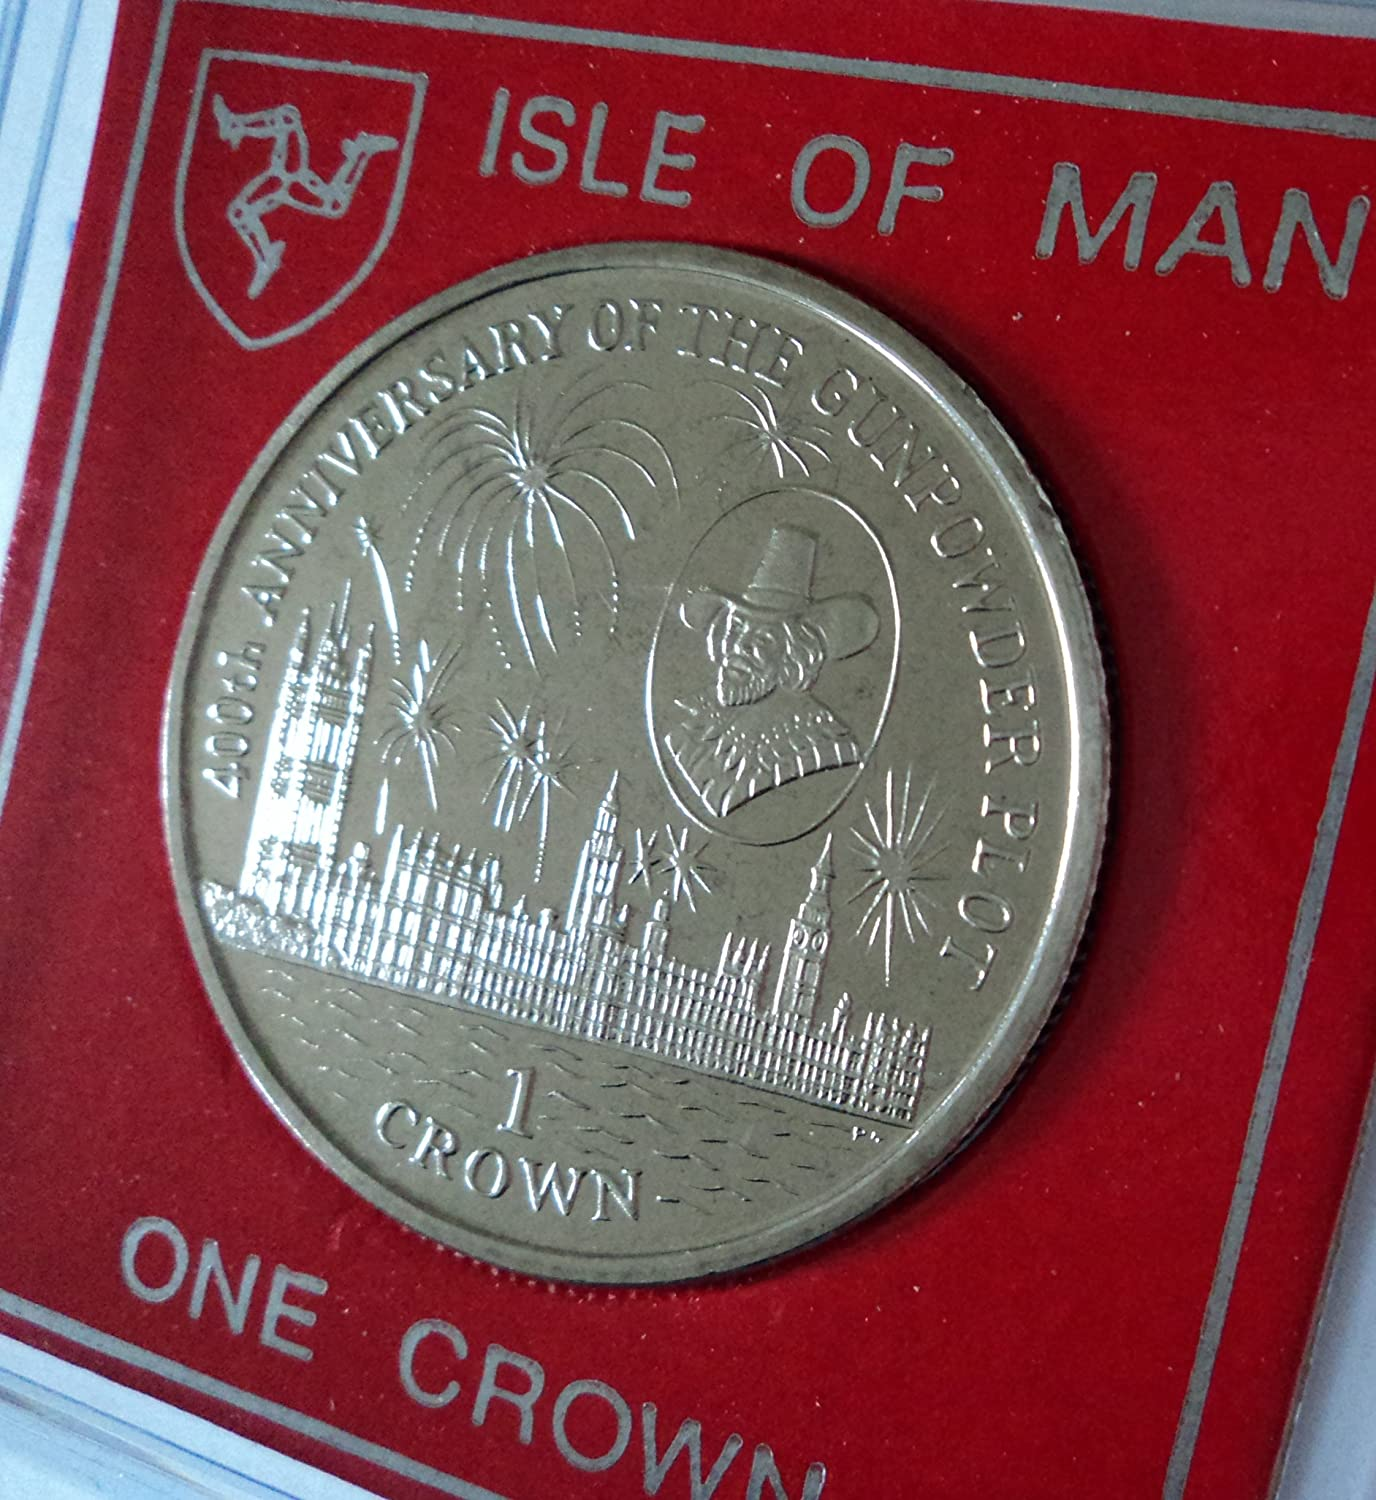 Gunpowder Plot Guy Fawkes 400th Anniversary 1605 to 2005 Isle of Man Commemorative Crown Coin (BU) Collector Gift Set in Display Case